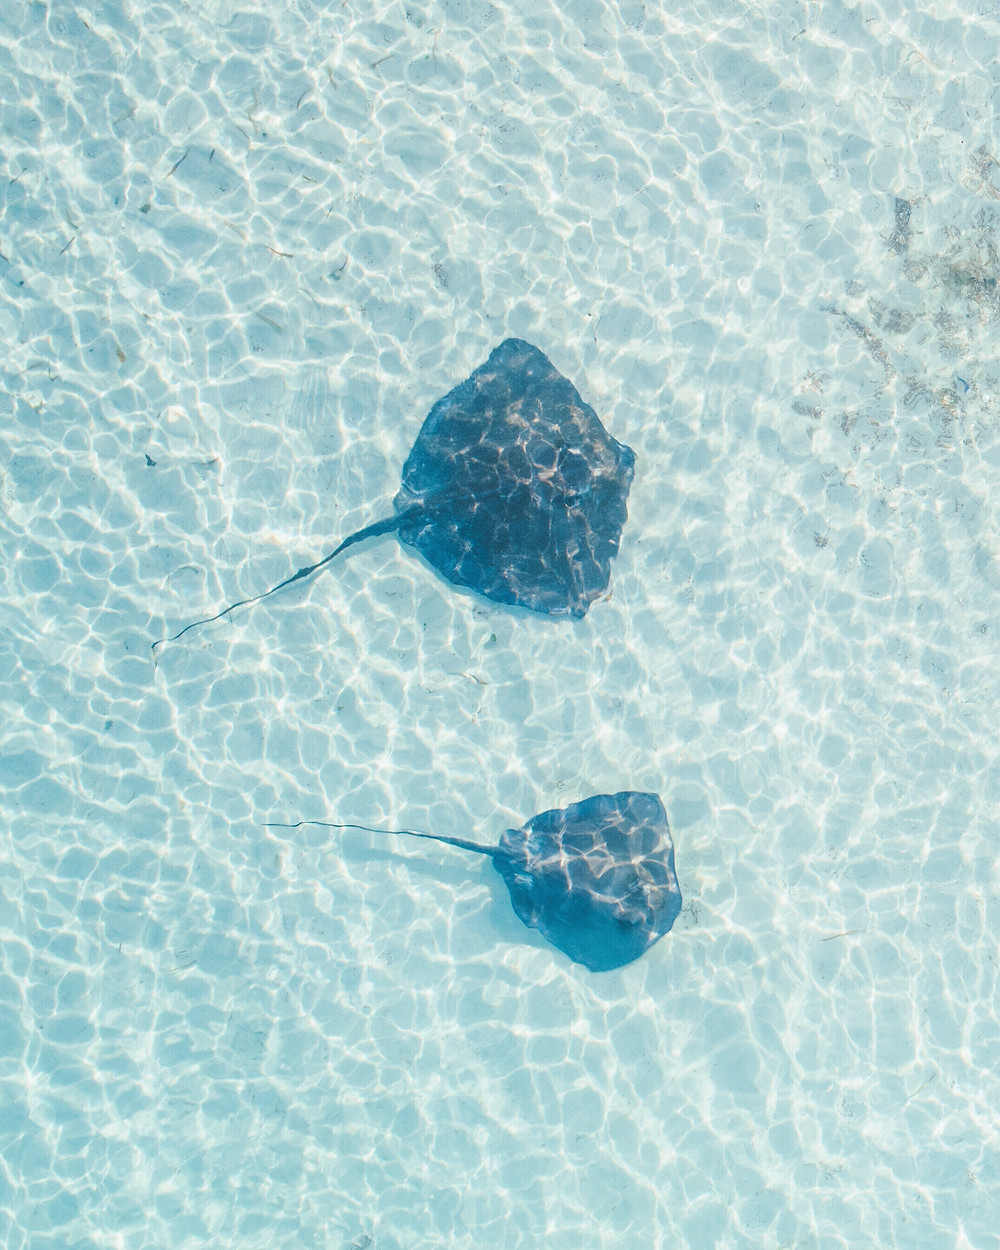 piercegainey dronedude stingrays swimming